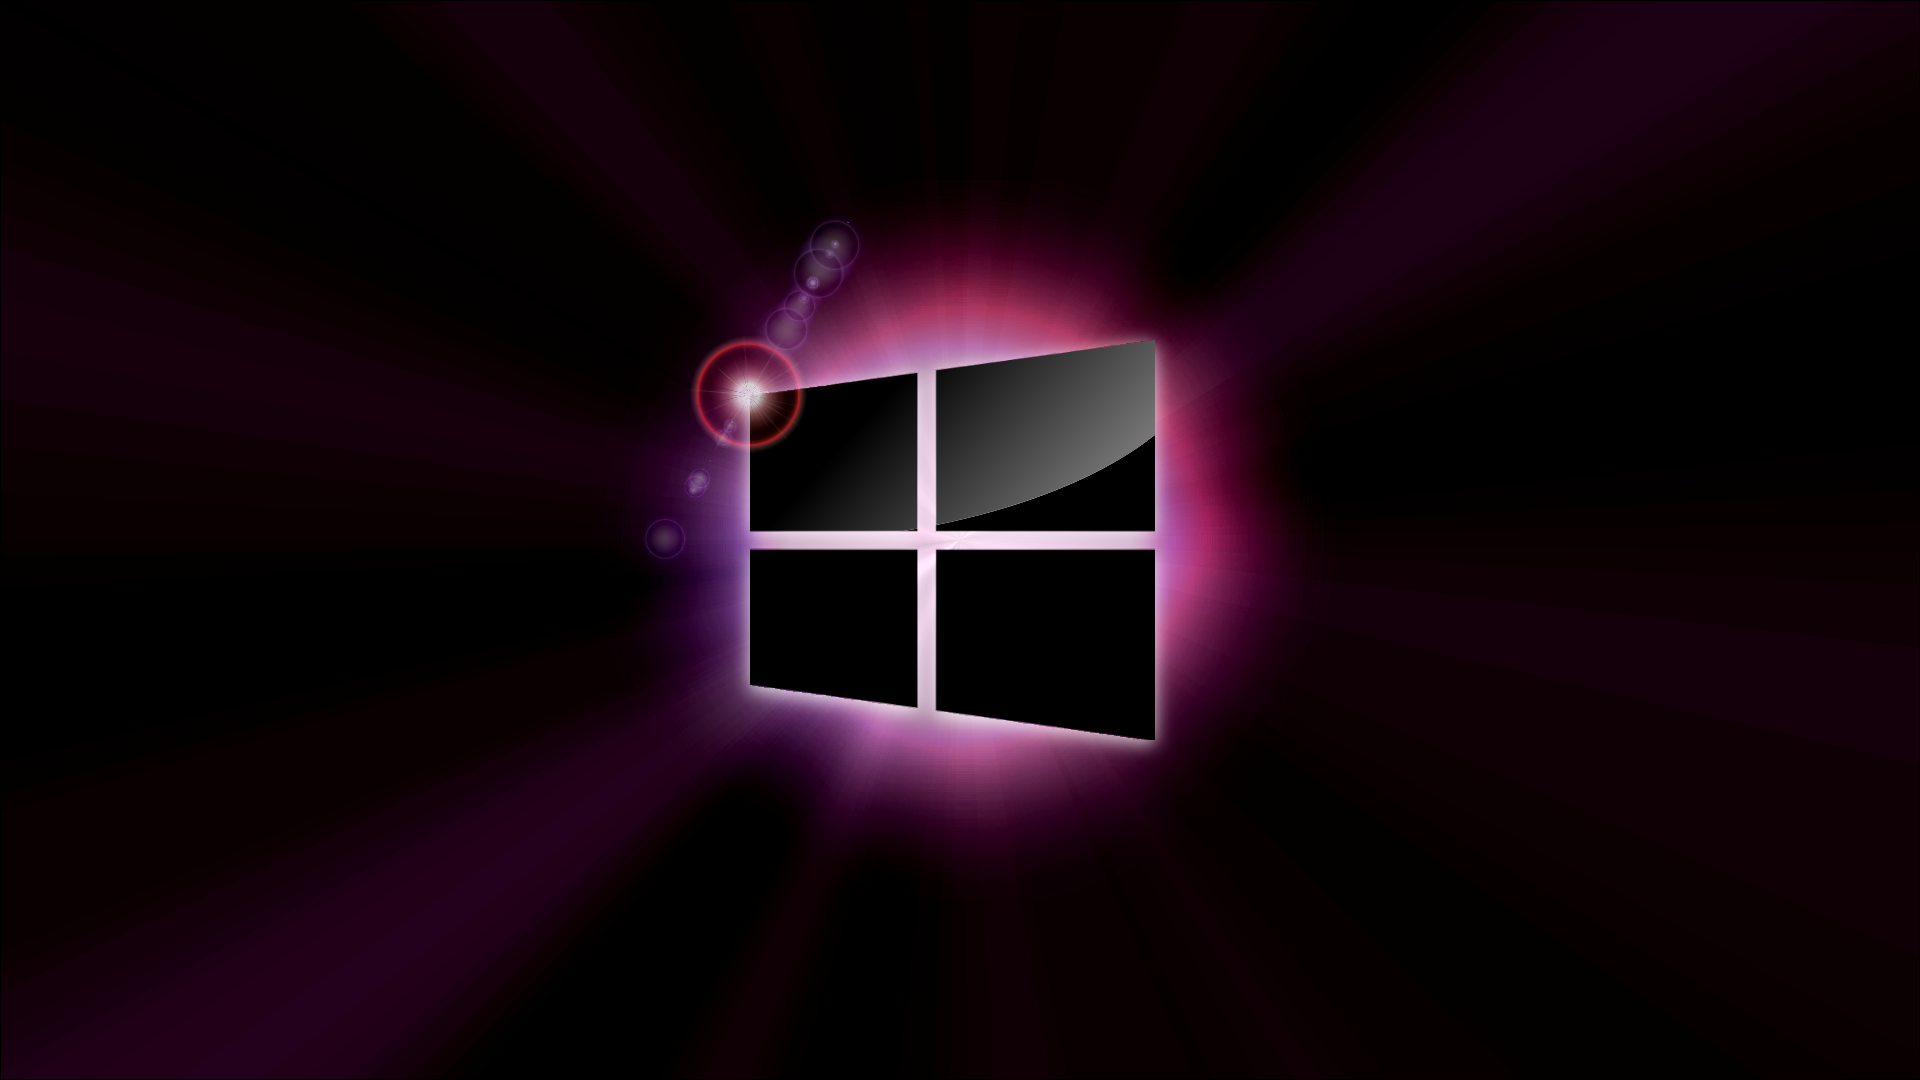 windows 8 full hd wallpaper and background image | 1920x1080 | id:461345